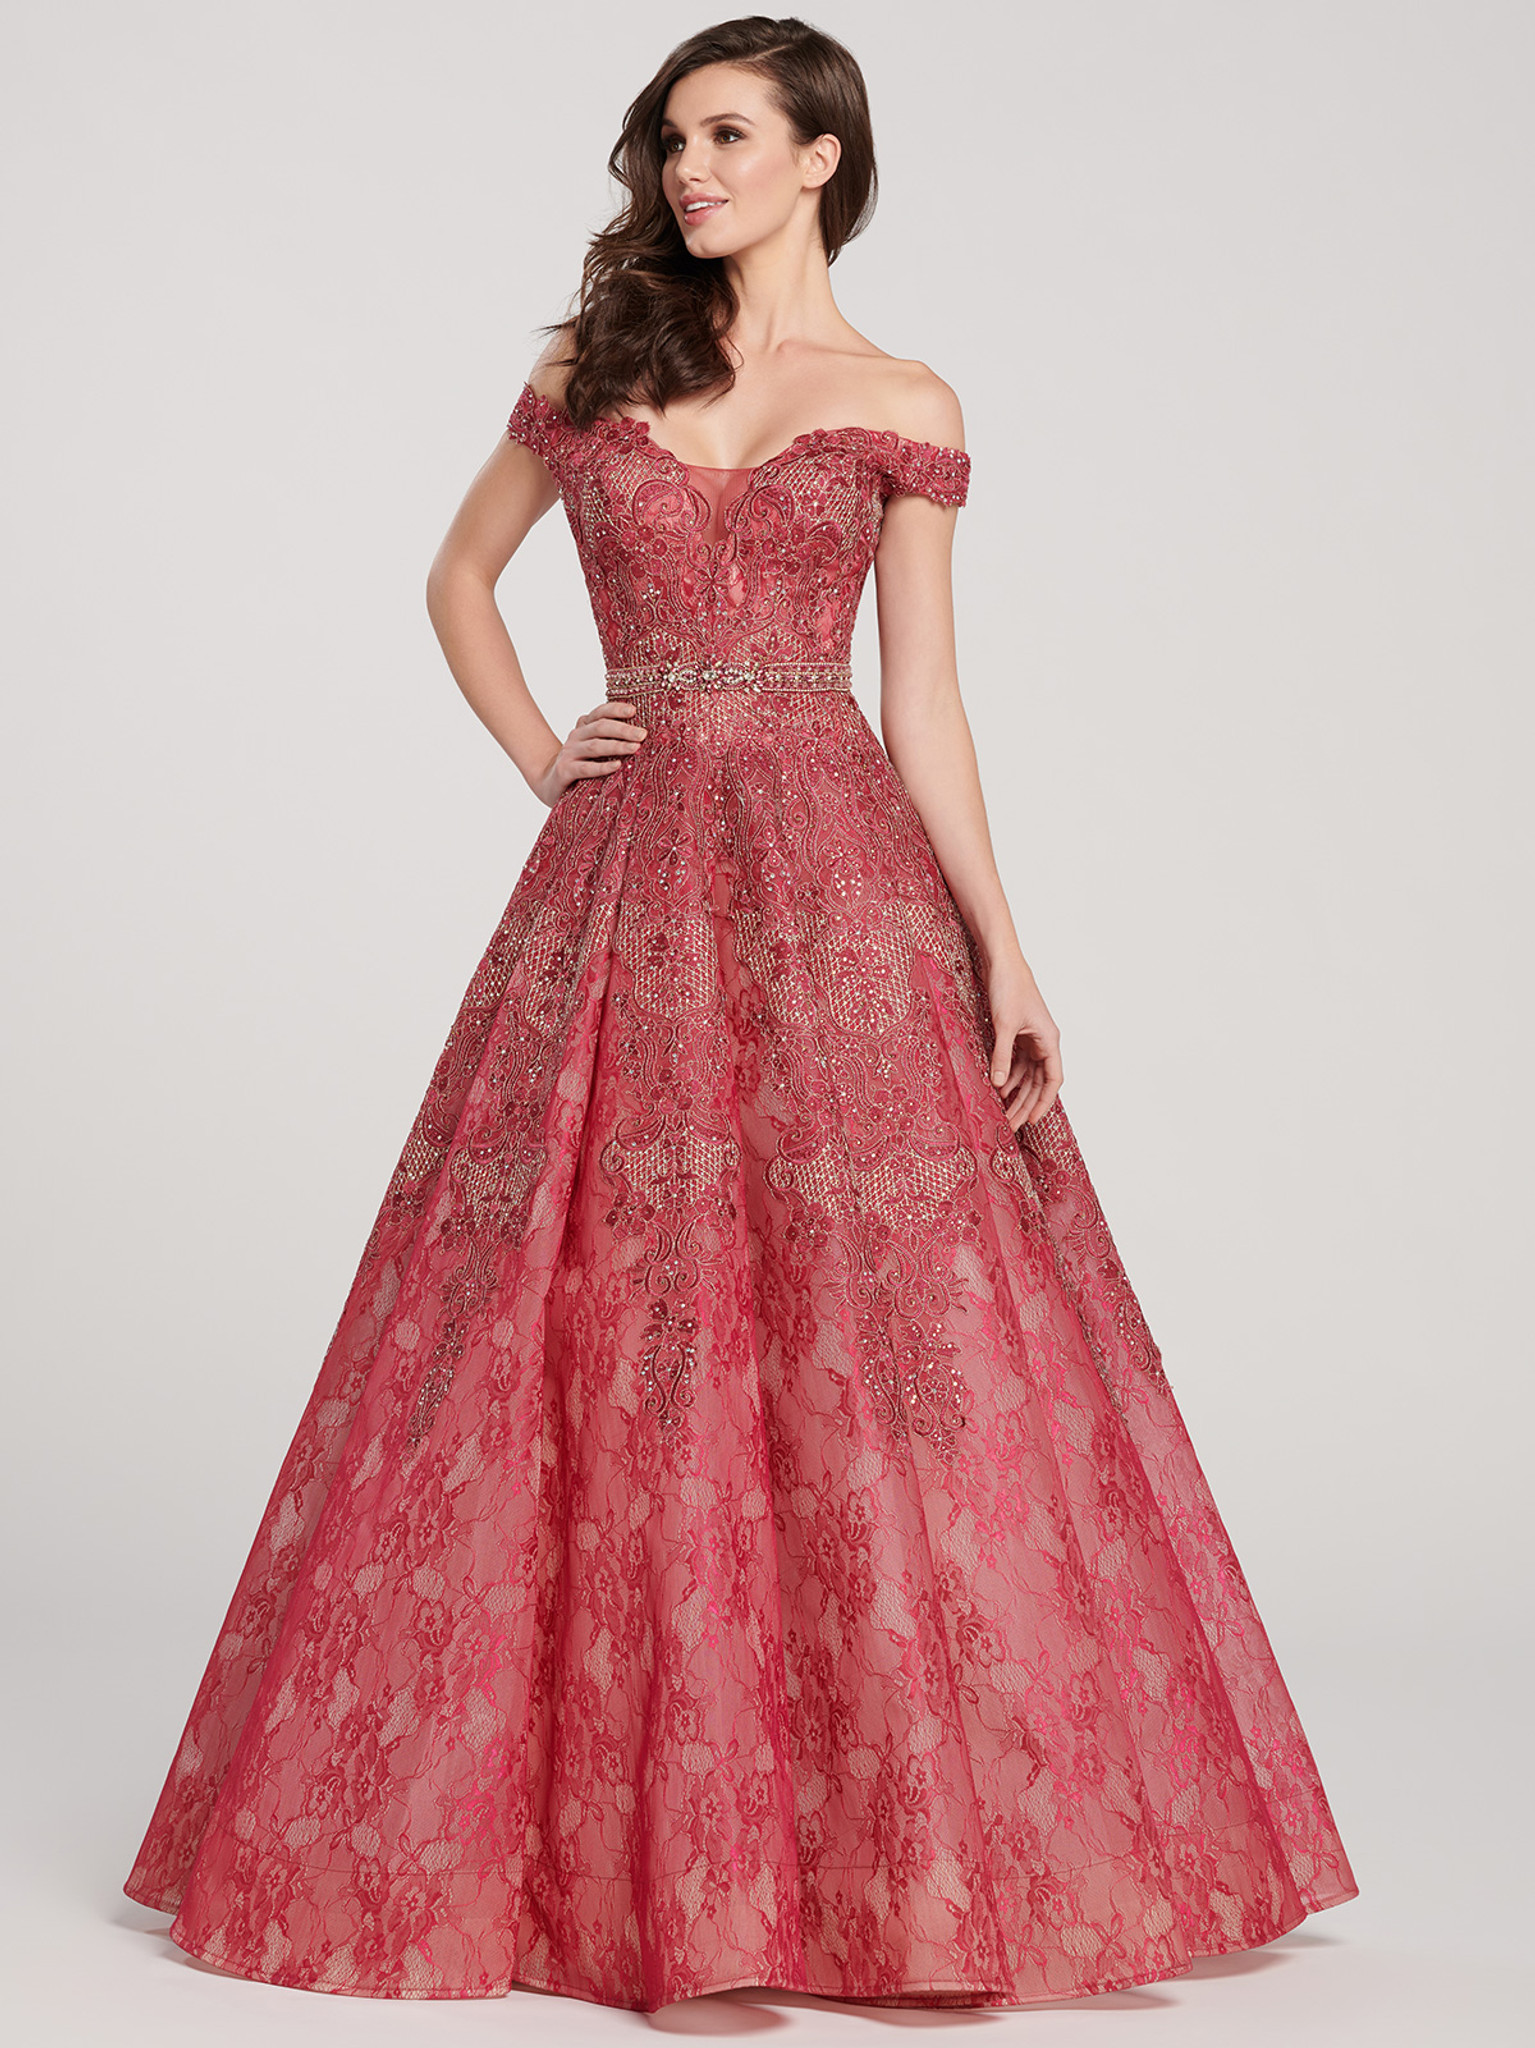 Embroidered Ellie Wilde Pageant Dress EW119027